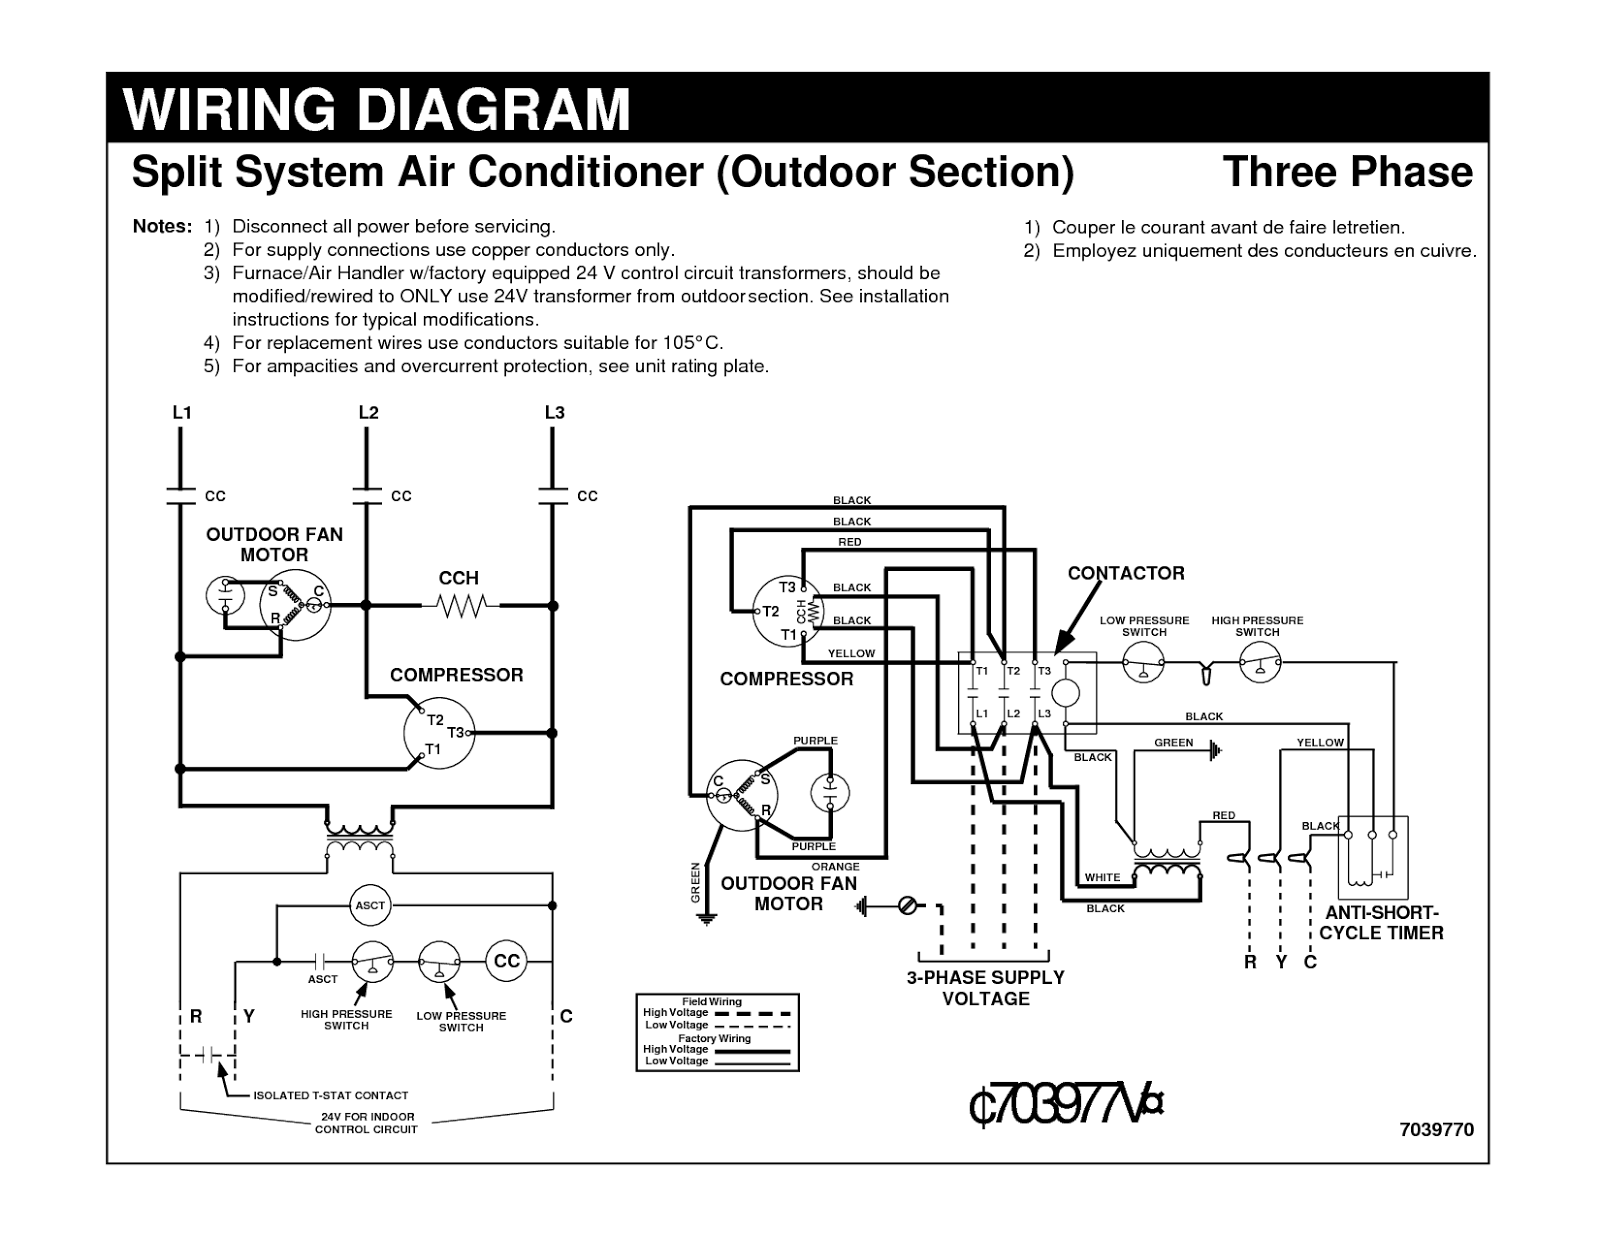 wiring+diagram+in+the+user+manual ac wiring diagram subaru ac wiring diagram \u2022 wiring diagrams j Split Air Conditioner Wiring Diagram at crackthecode.co